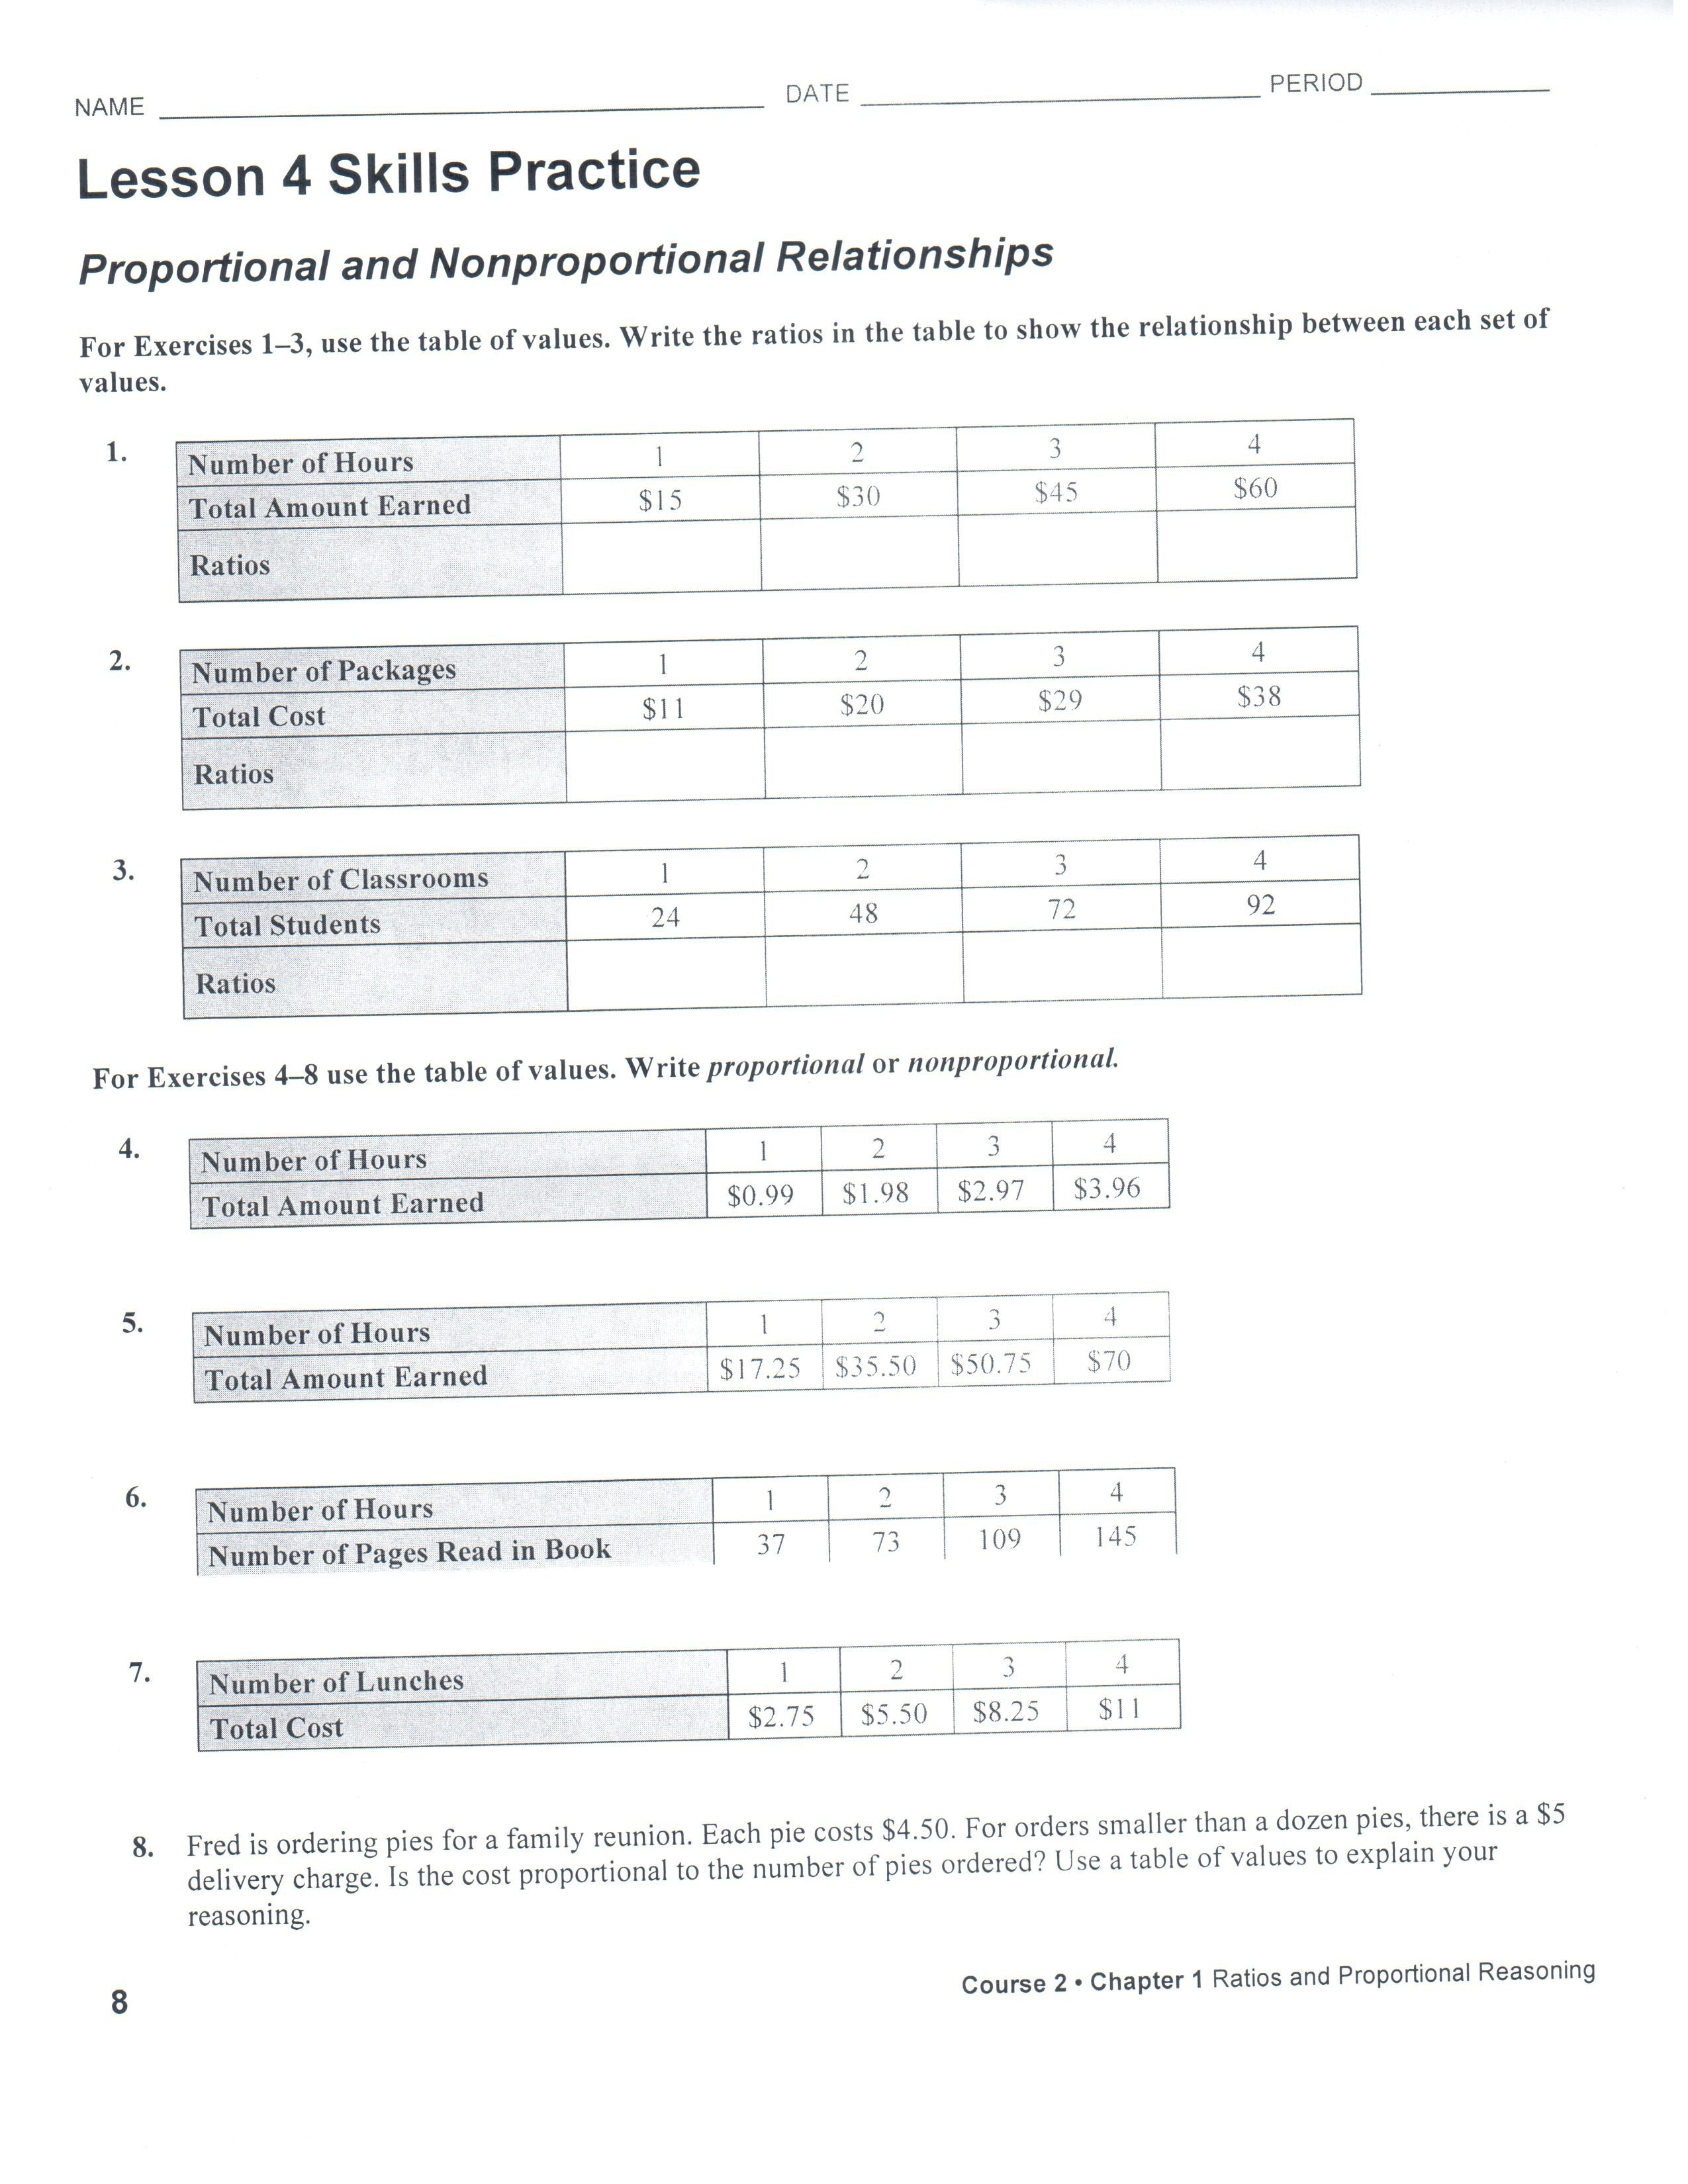 4 Images Lesson 4 Skills Practice Ratio Tables Answer Key